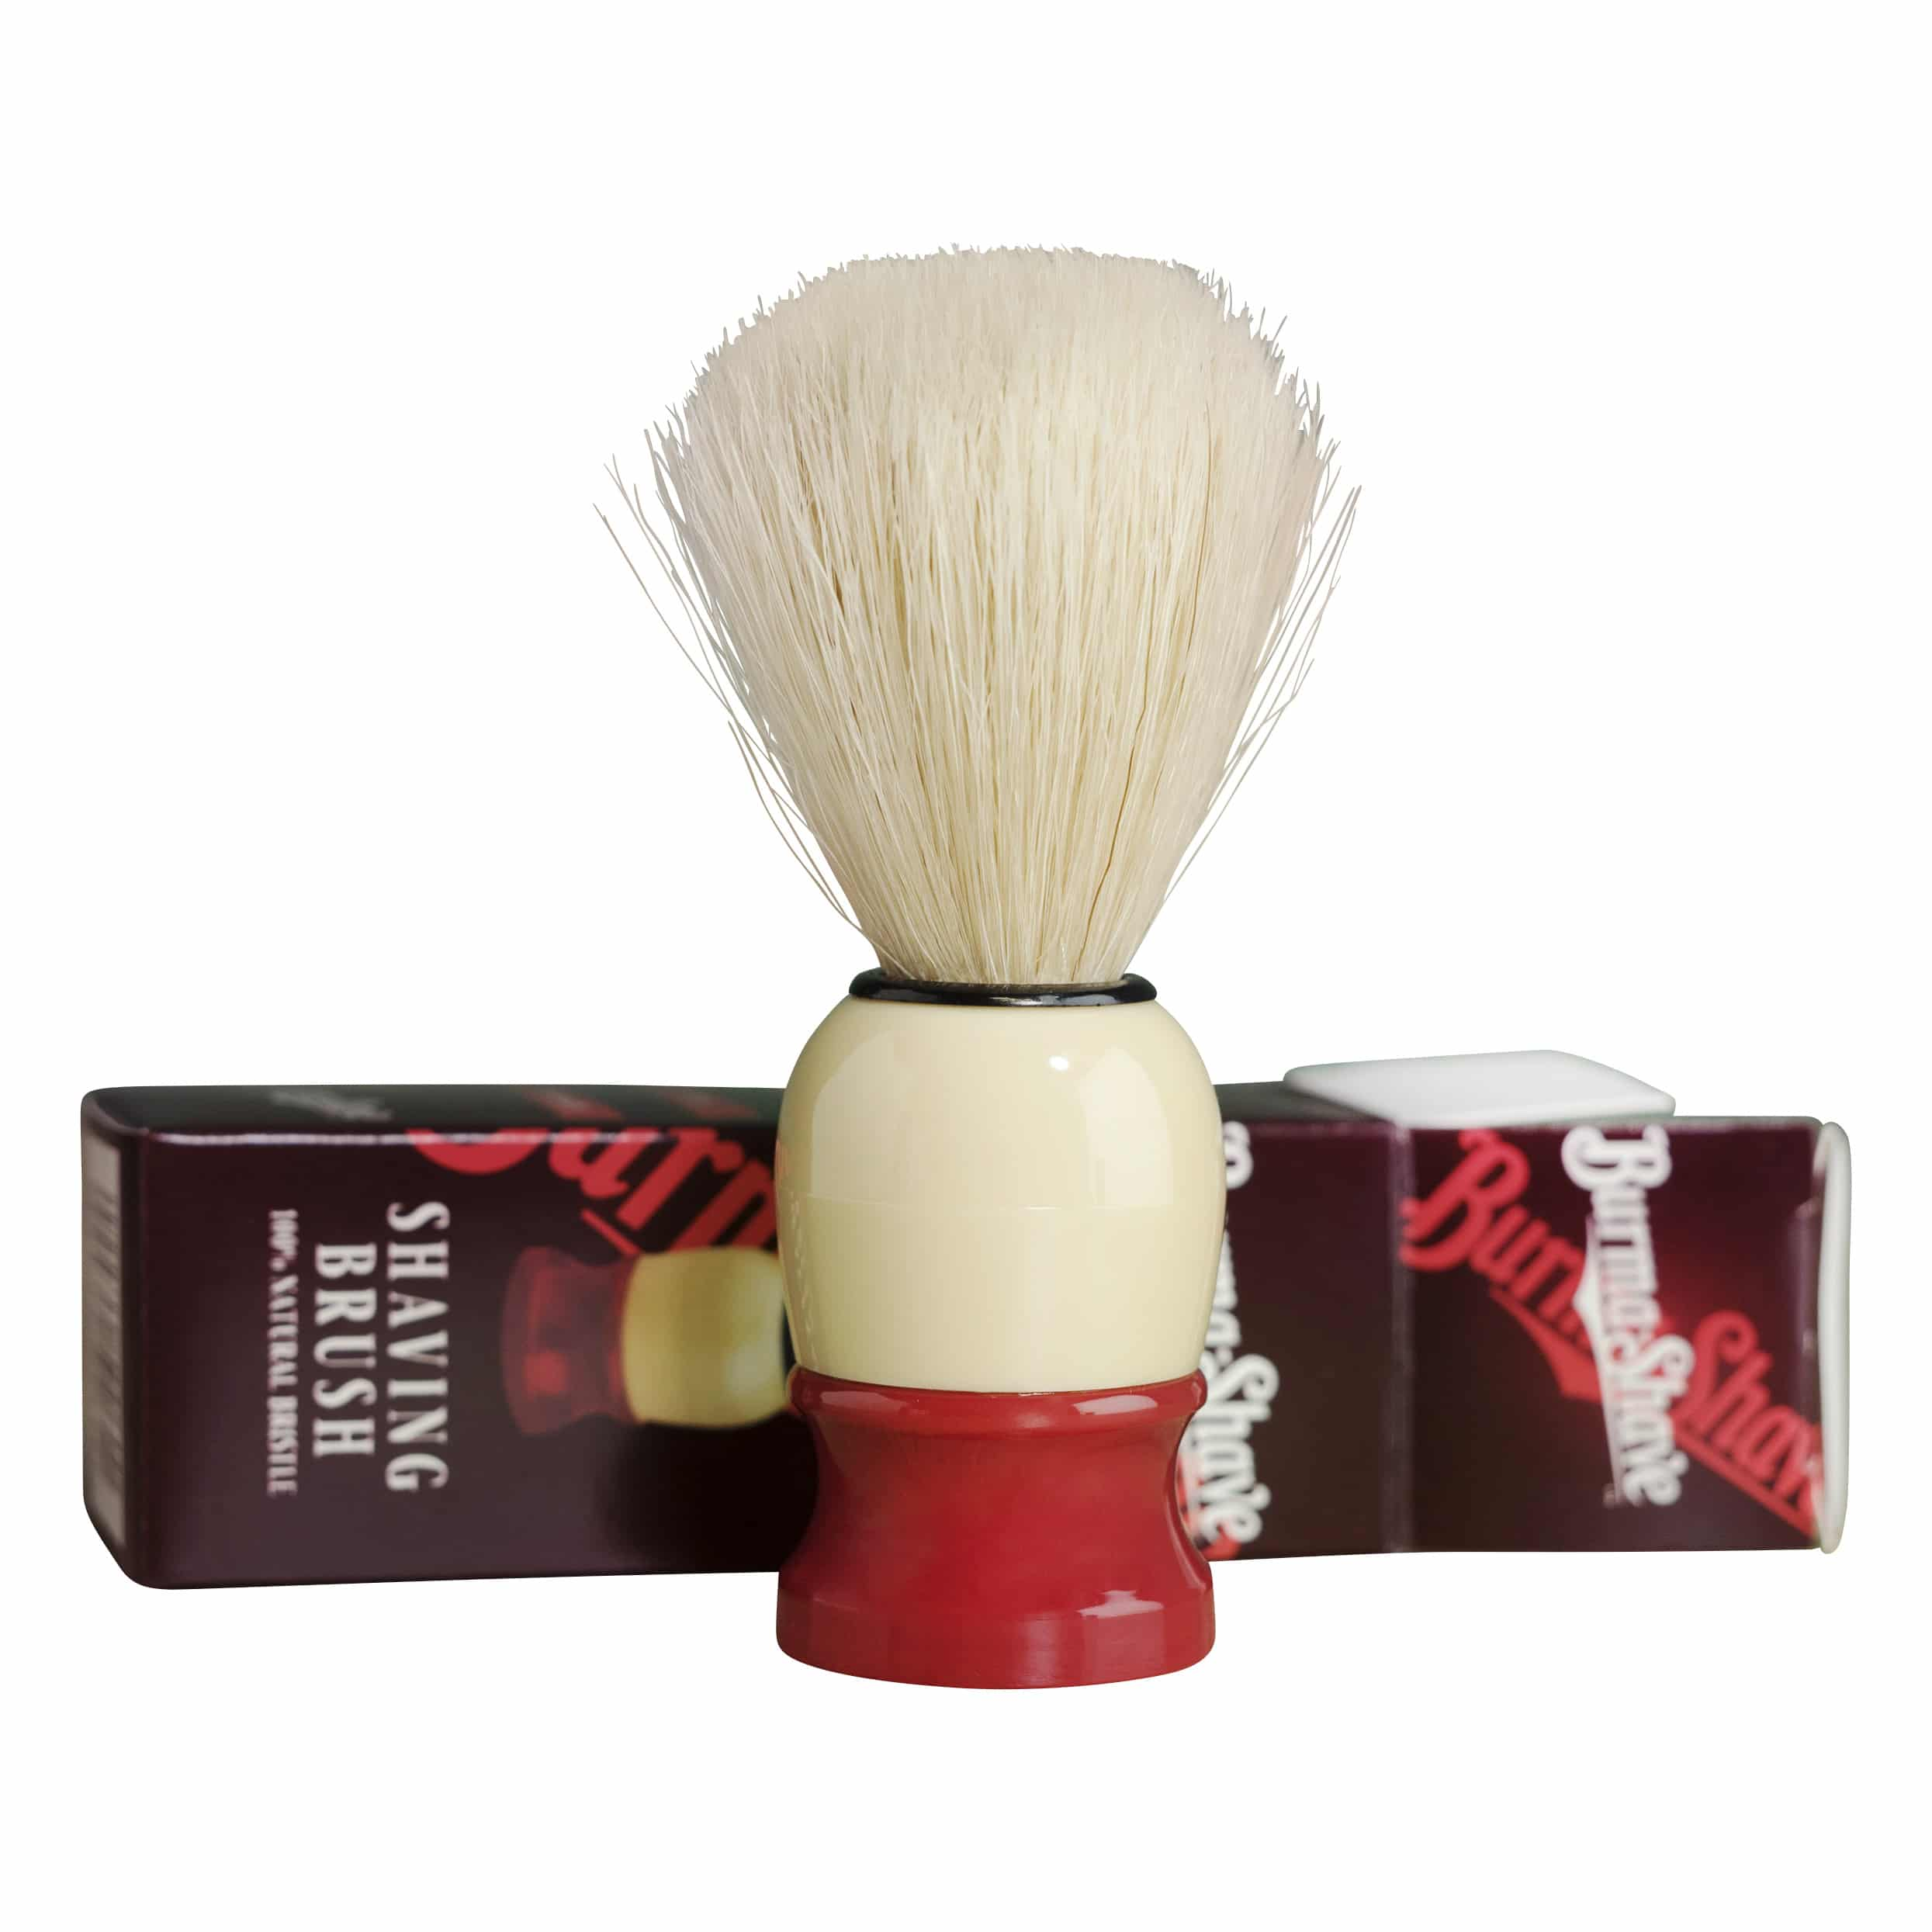 get your best shave with the burma brush